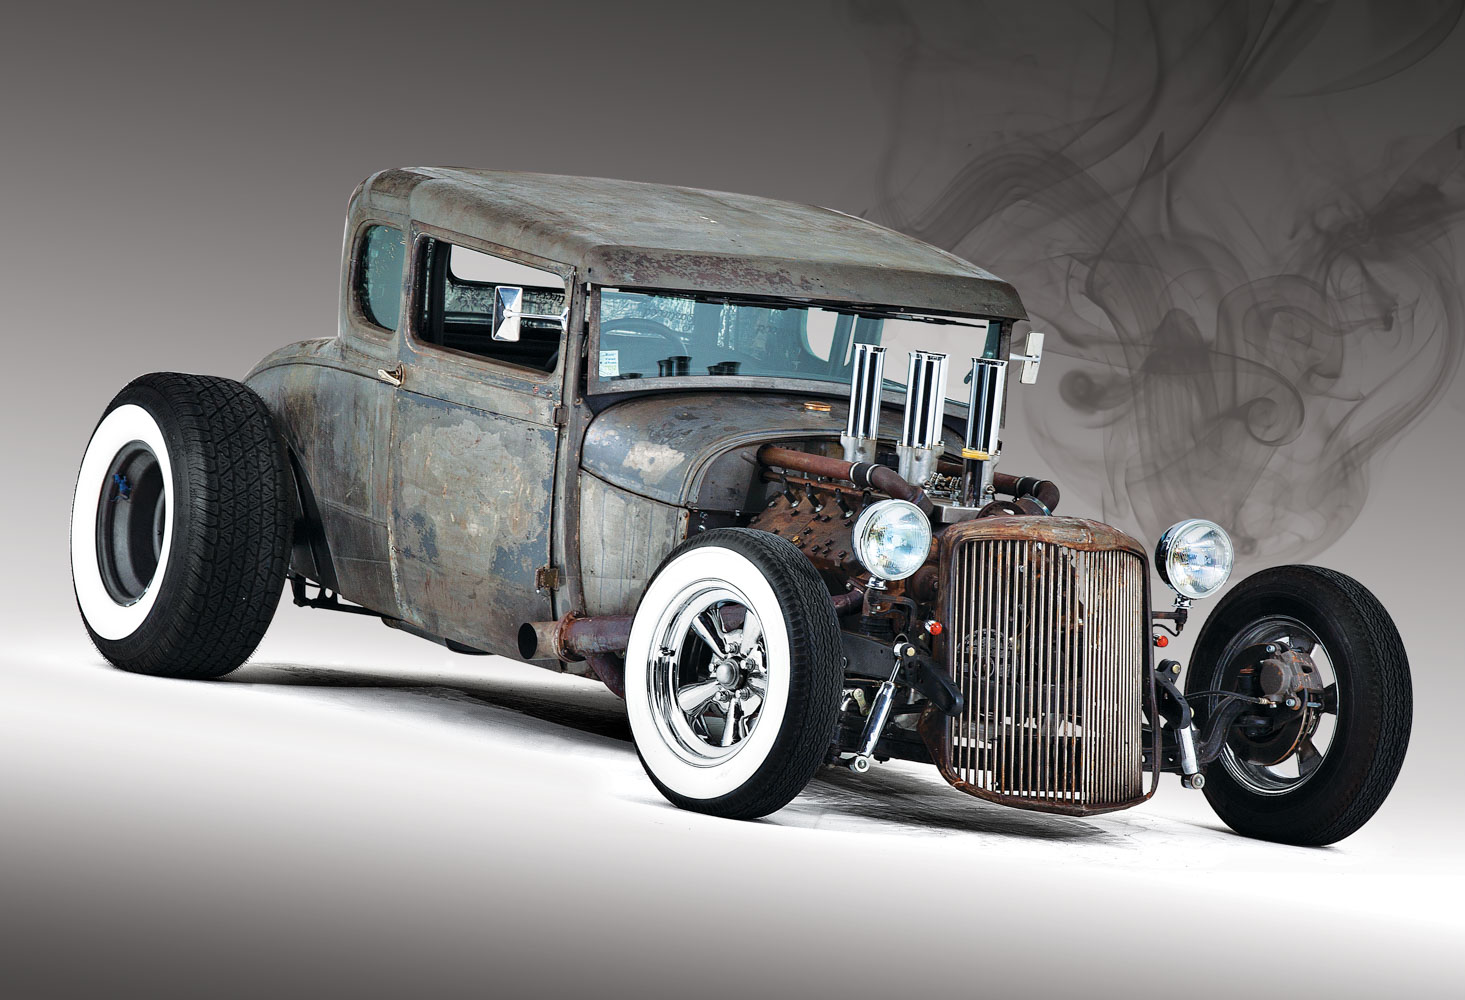 A perfectly imperfect 1928 Ford Rat Rod — The Motorhood